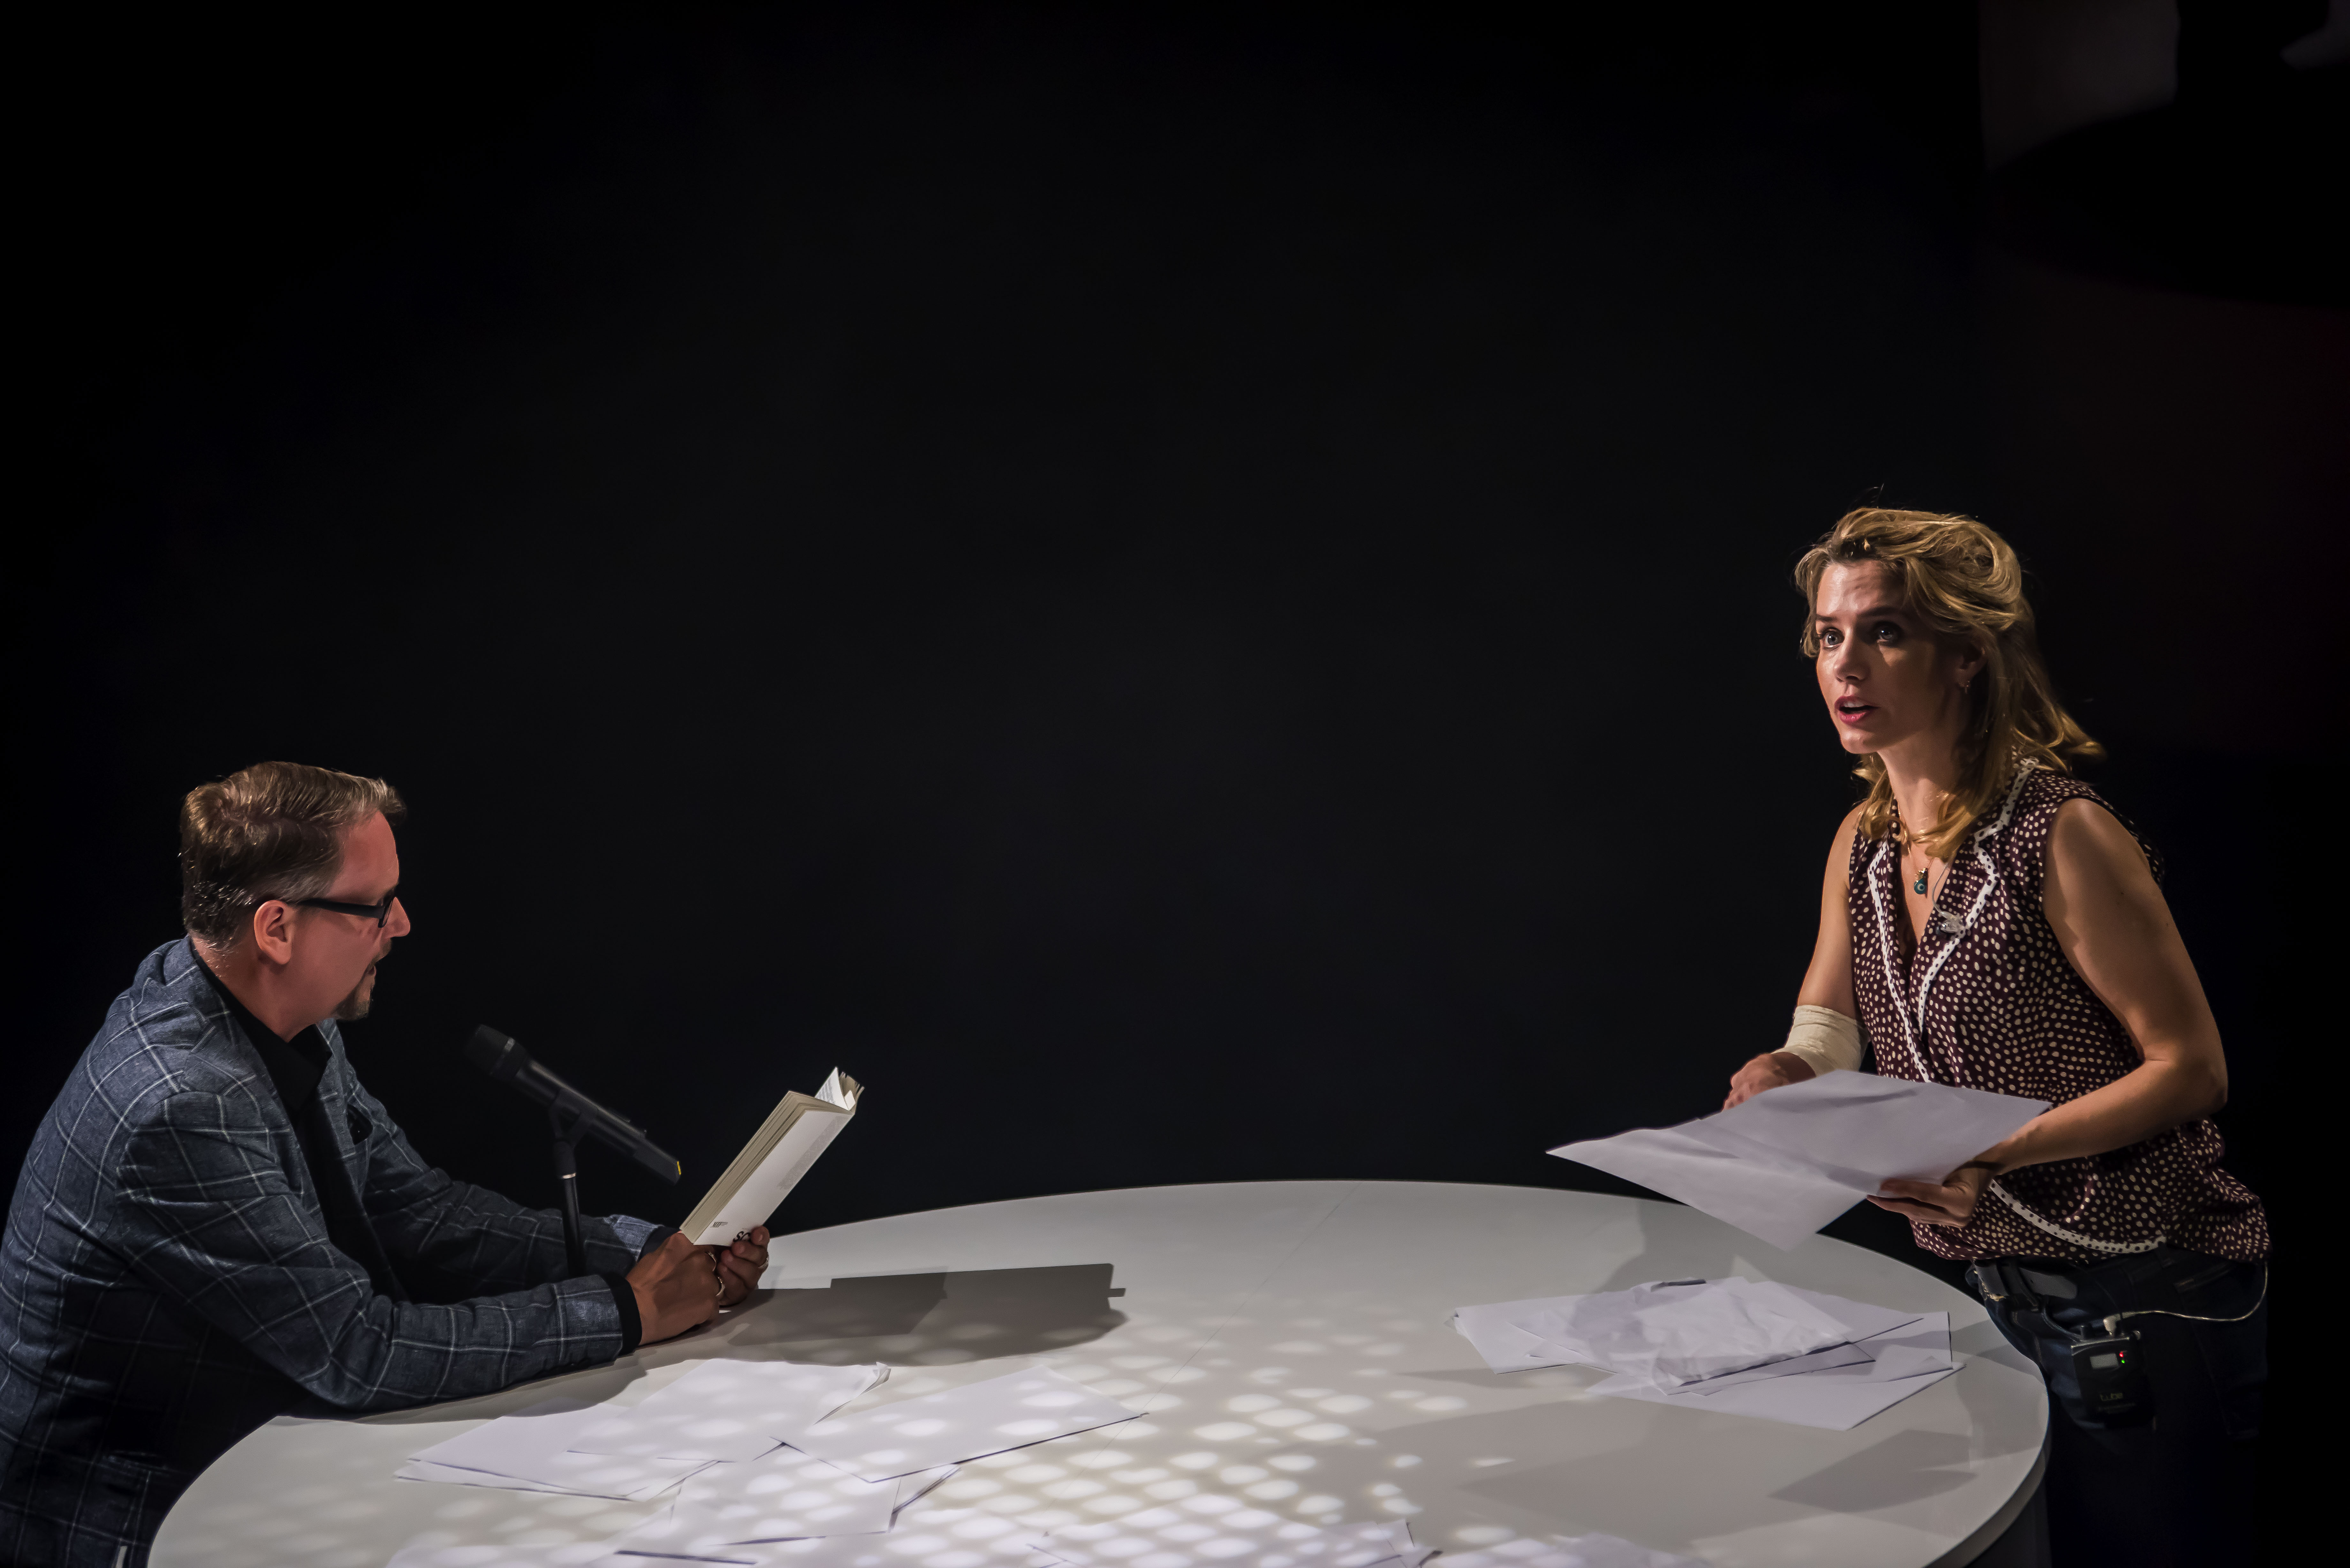 Author Sjón and Lisa Dwan Studio Créole at Manchester International Festival 2019 image credit Chris Payne 51141